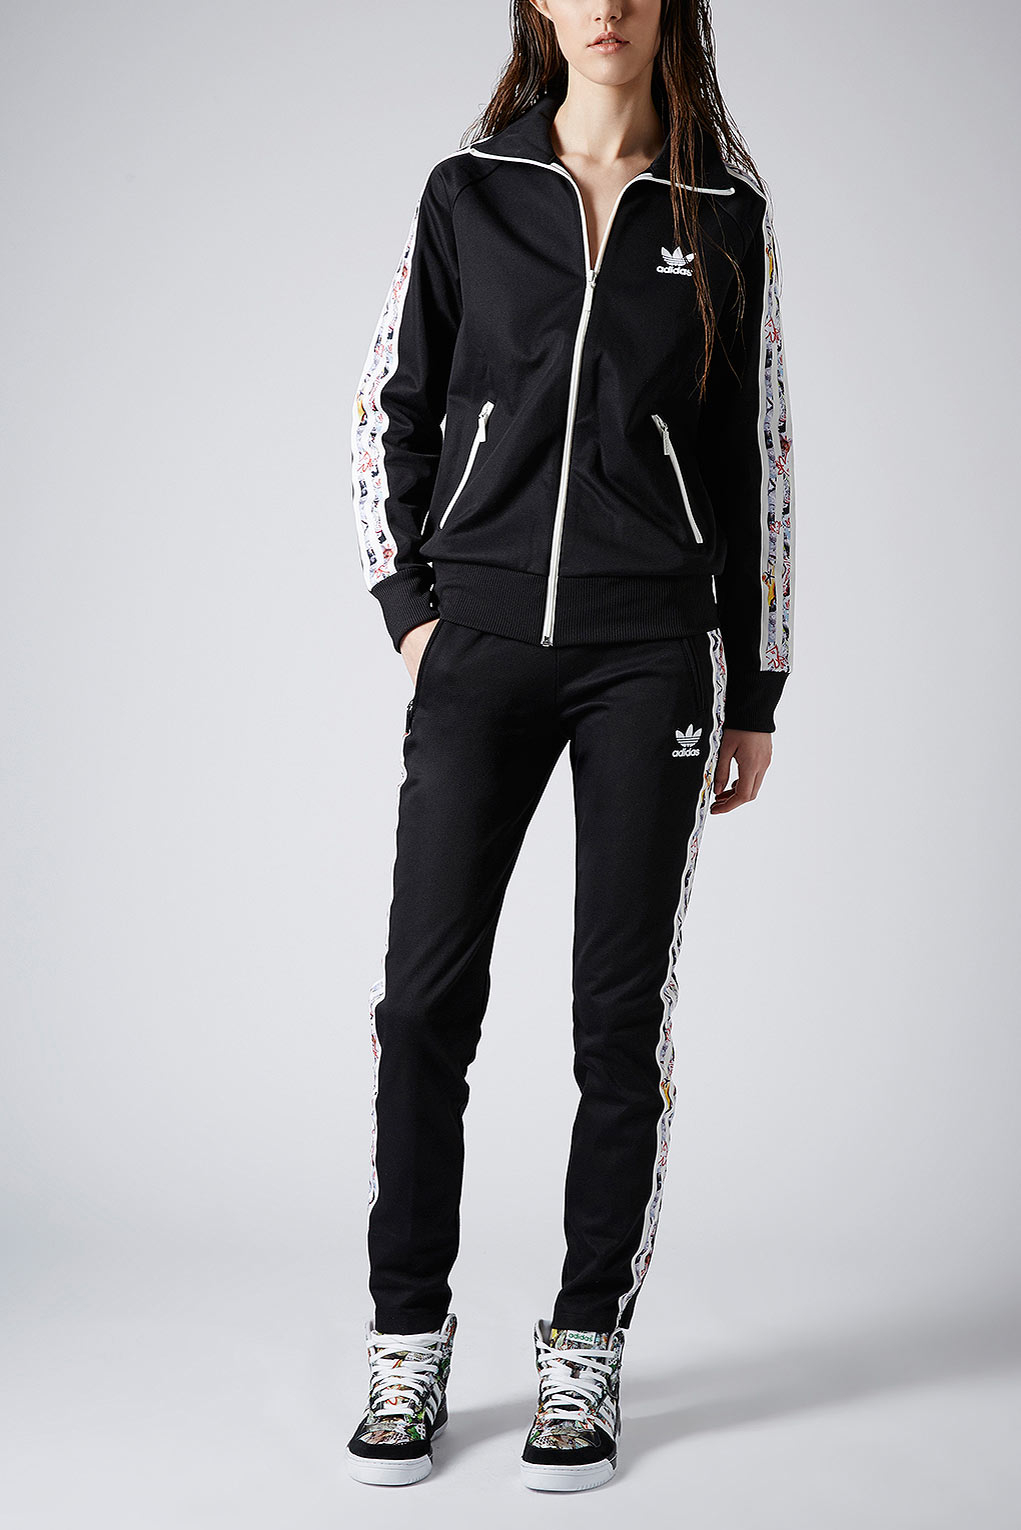 TOPSHOP Track Pants By X Adidas Originals in Black - Lyst